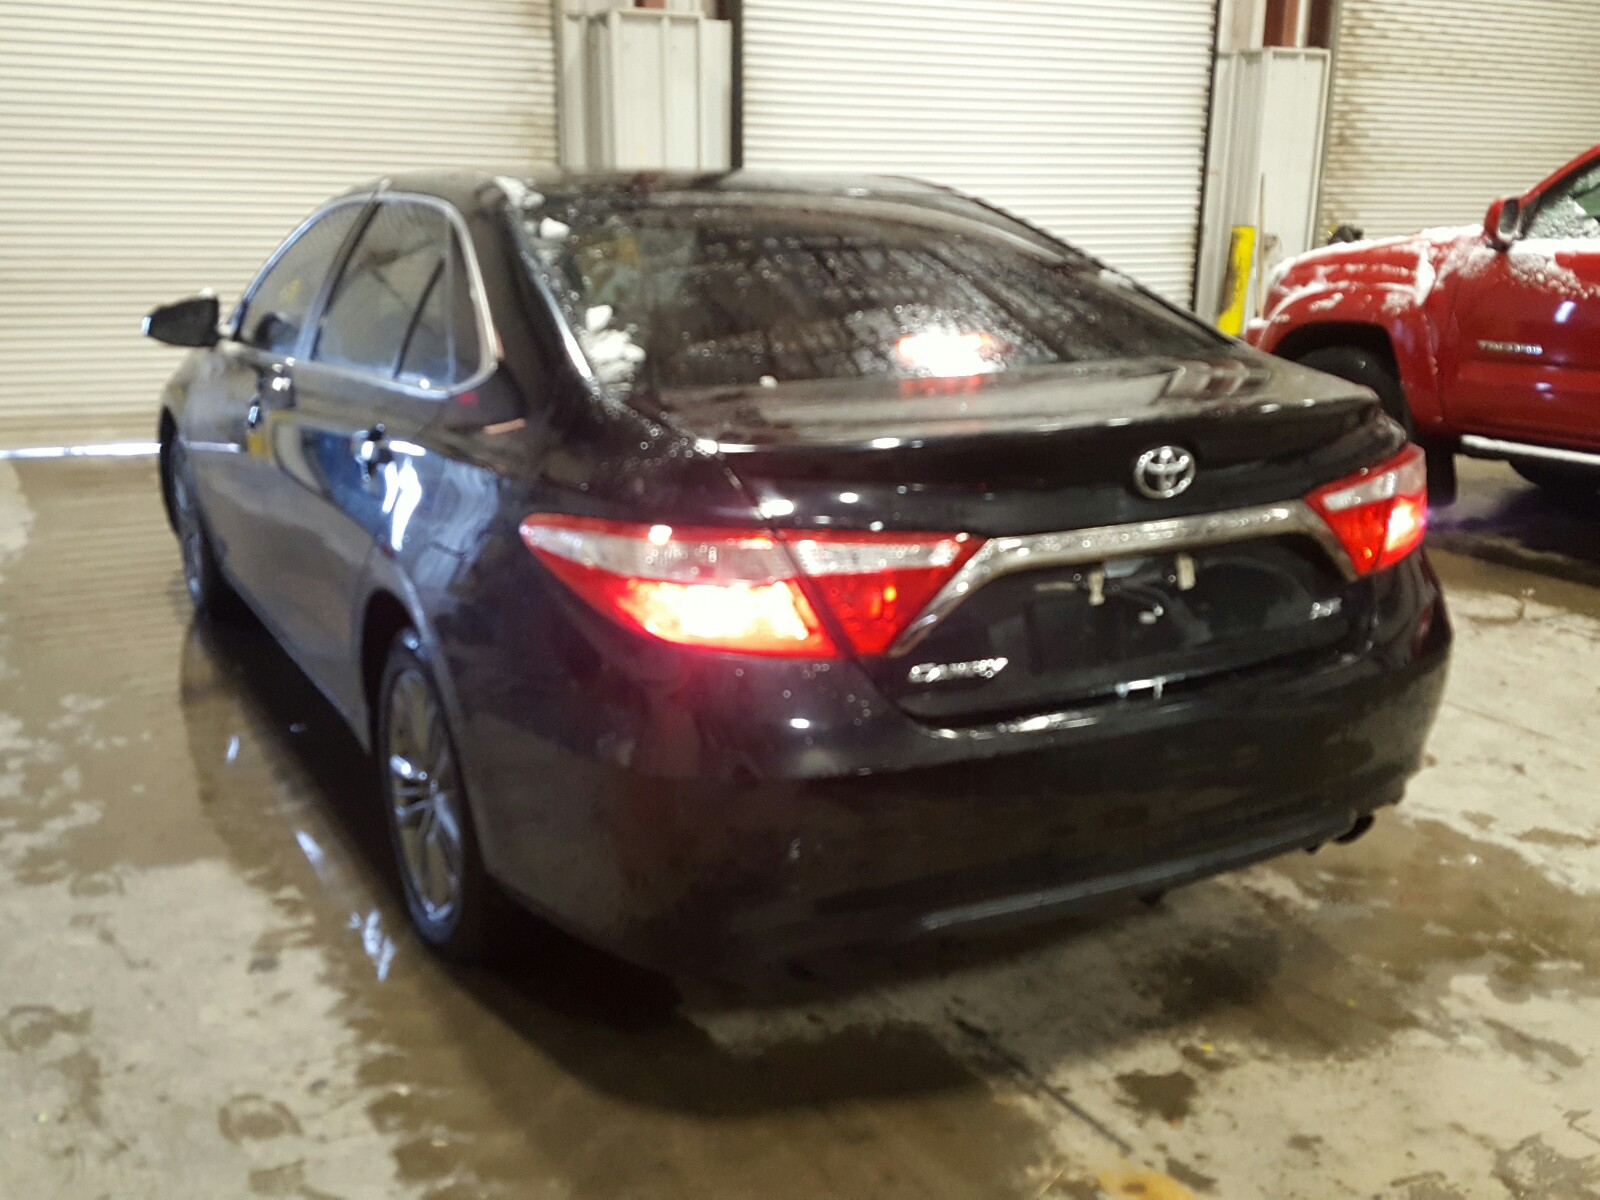 4T1BF1FK6GU520465 - 2016 Toyota Camry Le 2.5L [Angle] View